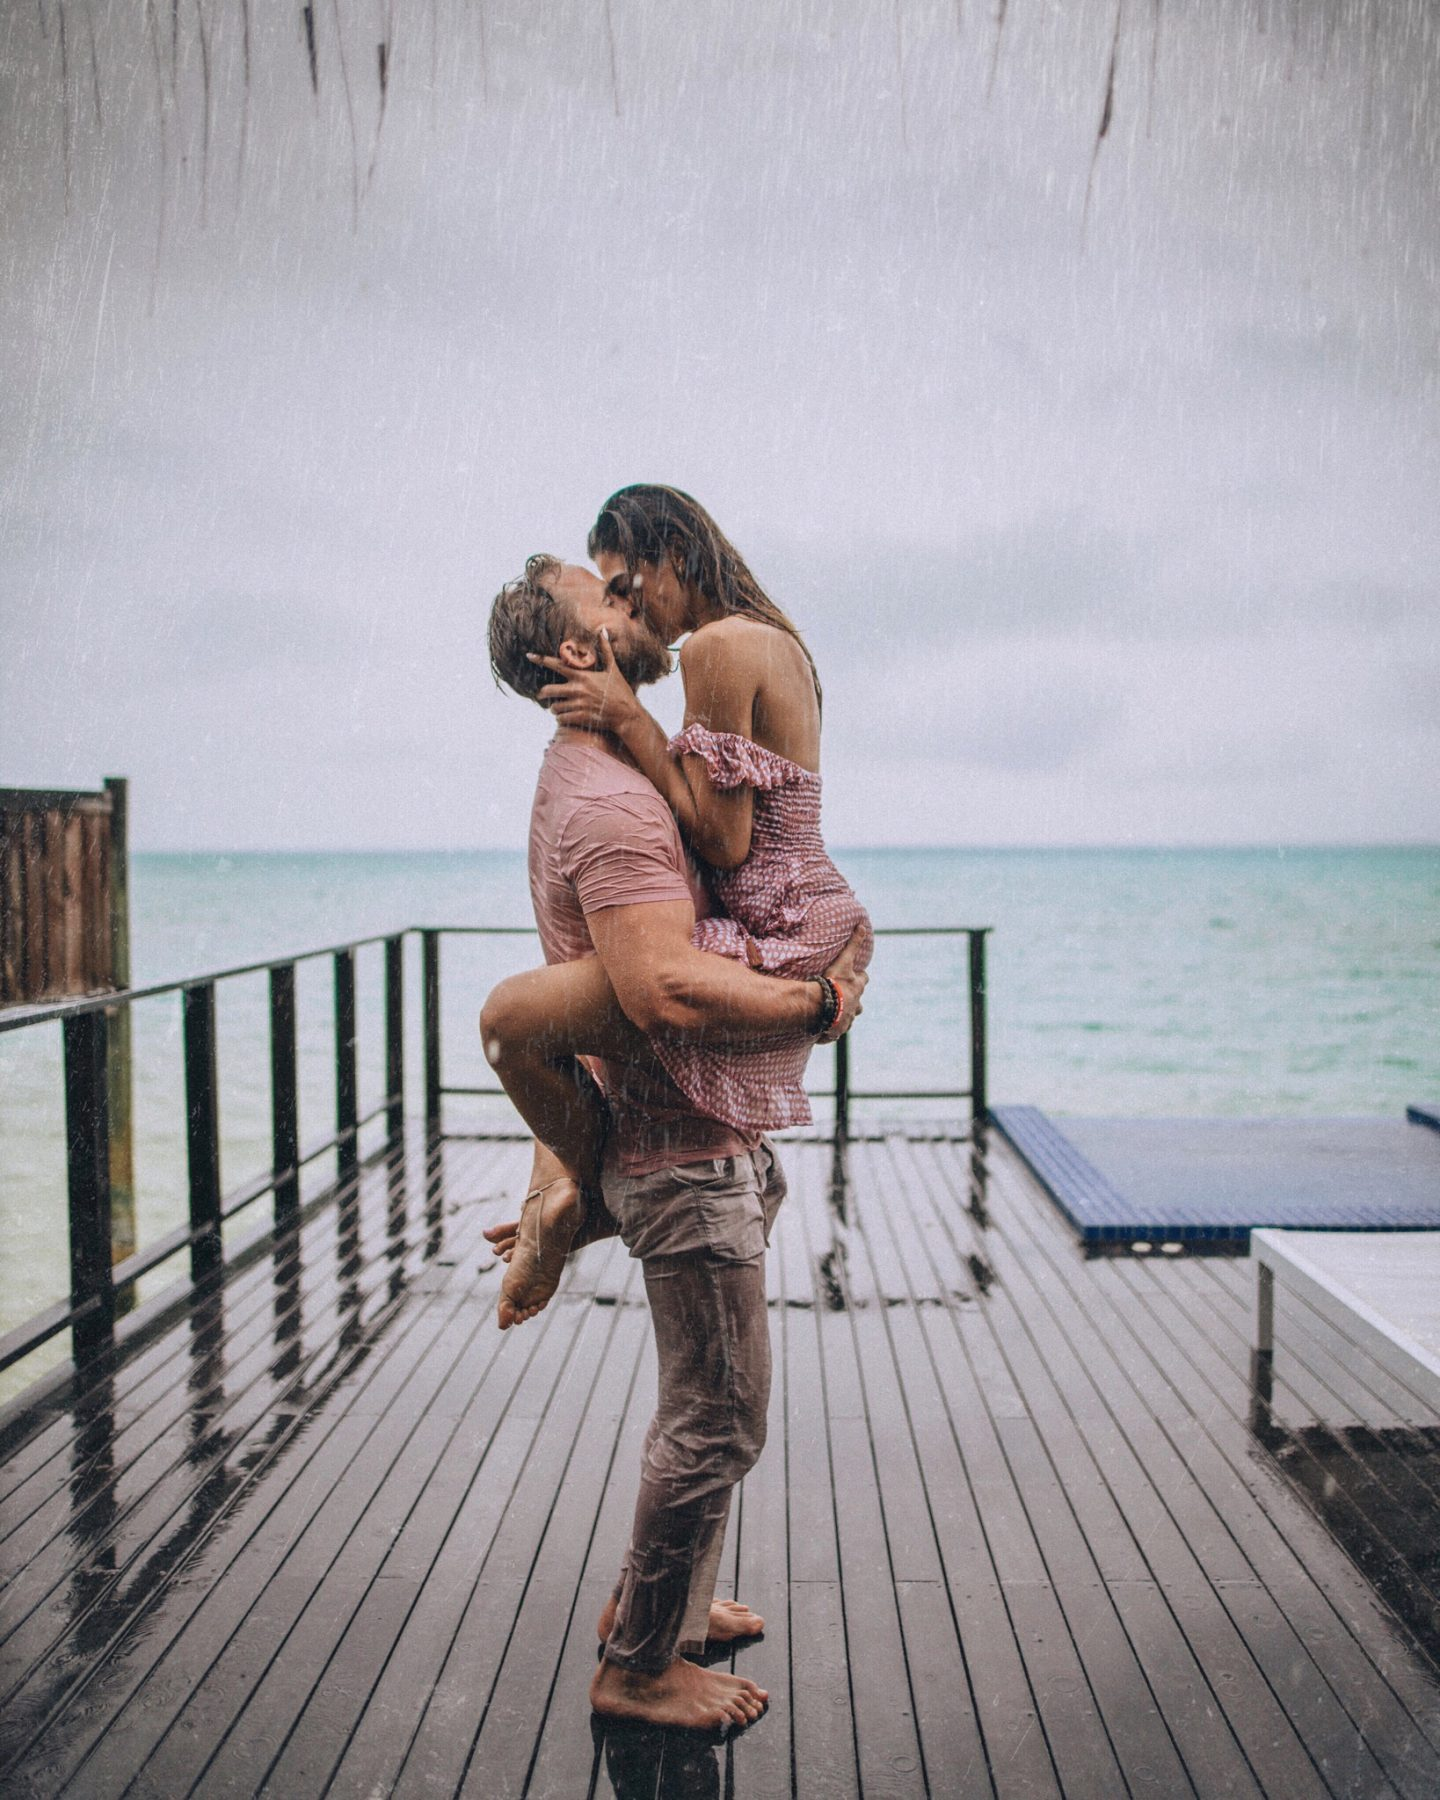 Couple reinacts the famous kiss from The Notebook in an overwater bungalow at Conrad Rangali Island in the Maldives